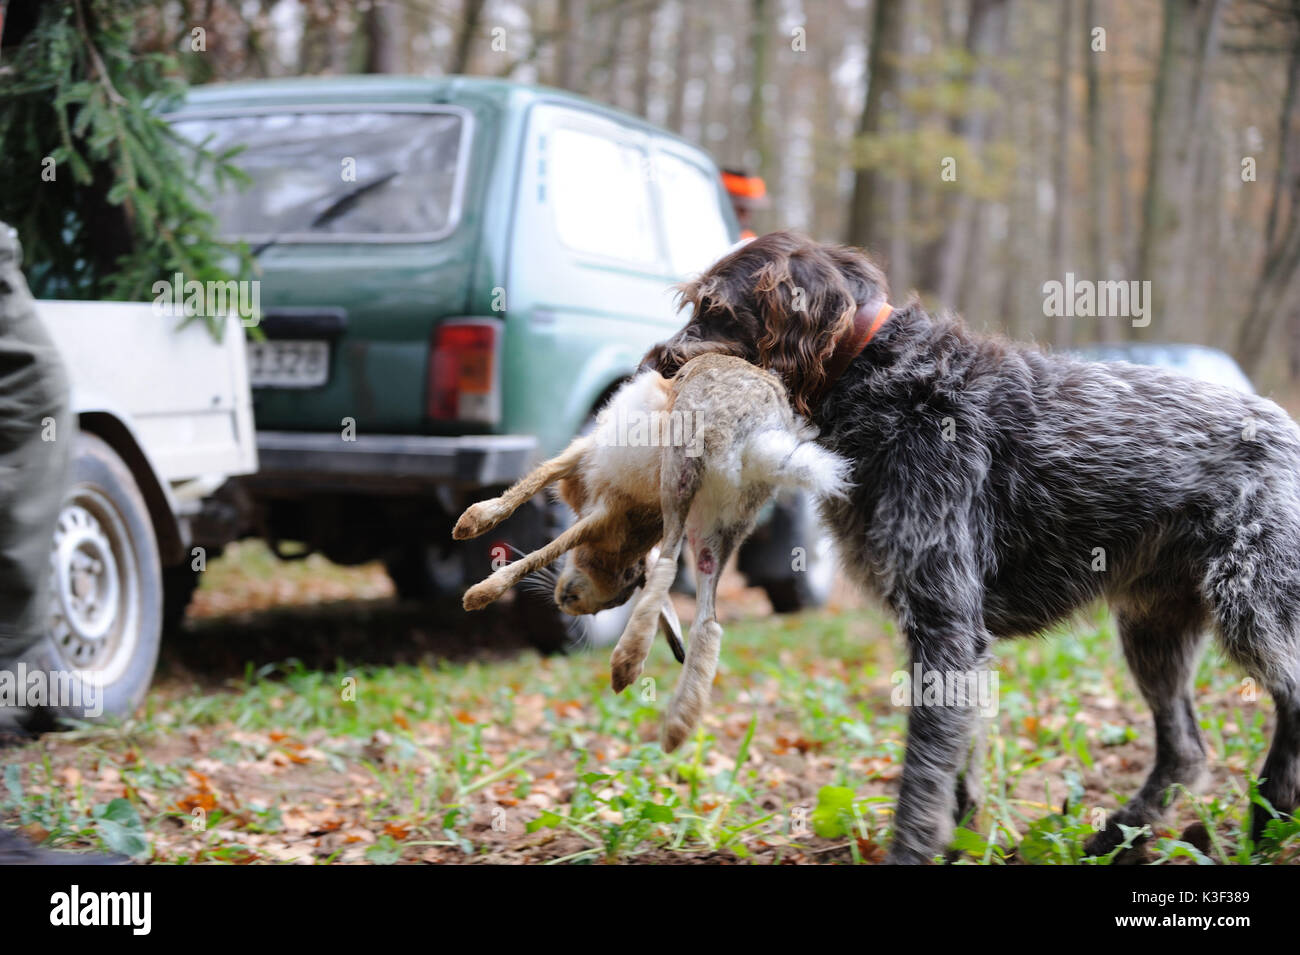 rural ground game hunting, hound retrieves prey, - Stock Image